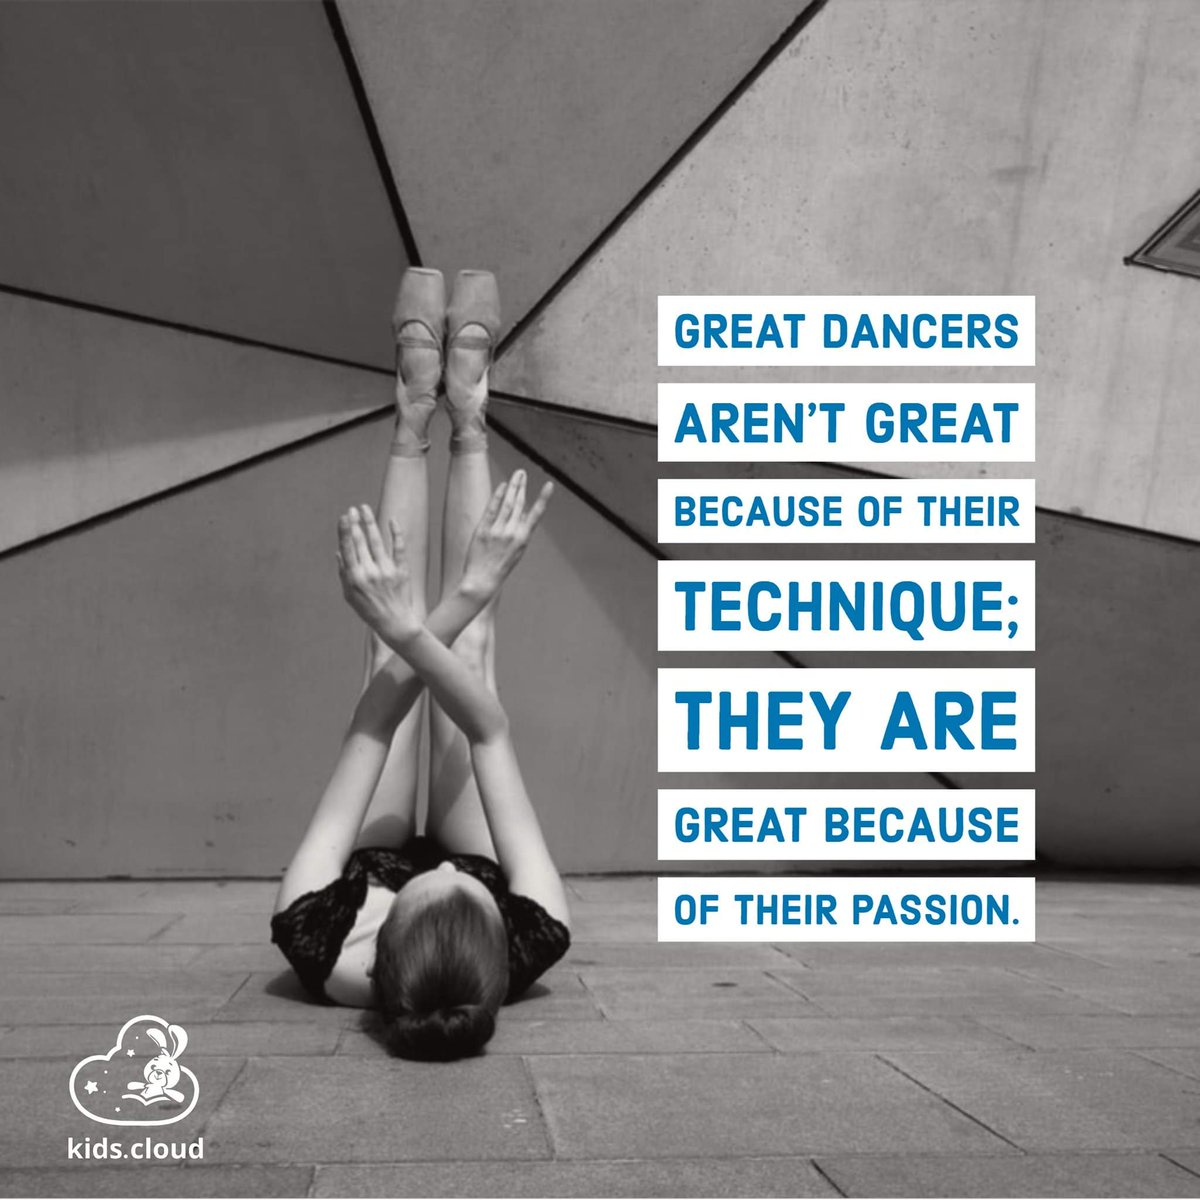 Great #dancers aren't great because of their #technique, they are great because of their #passion.